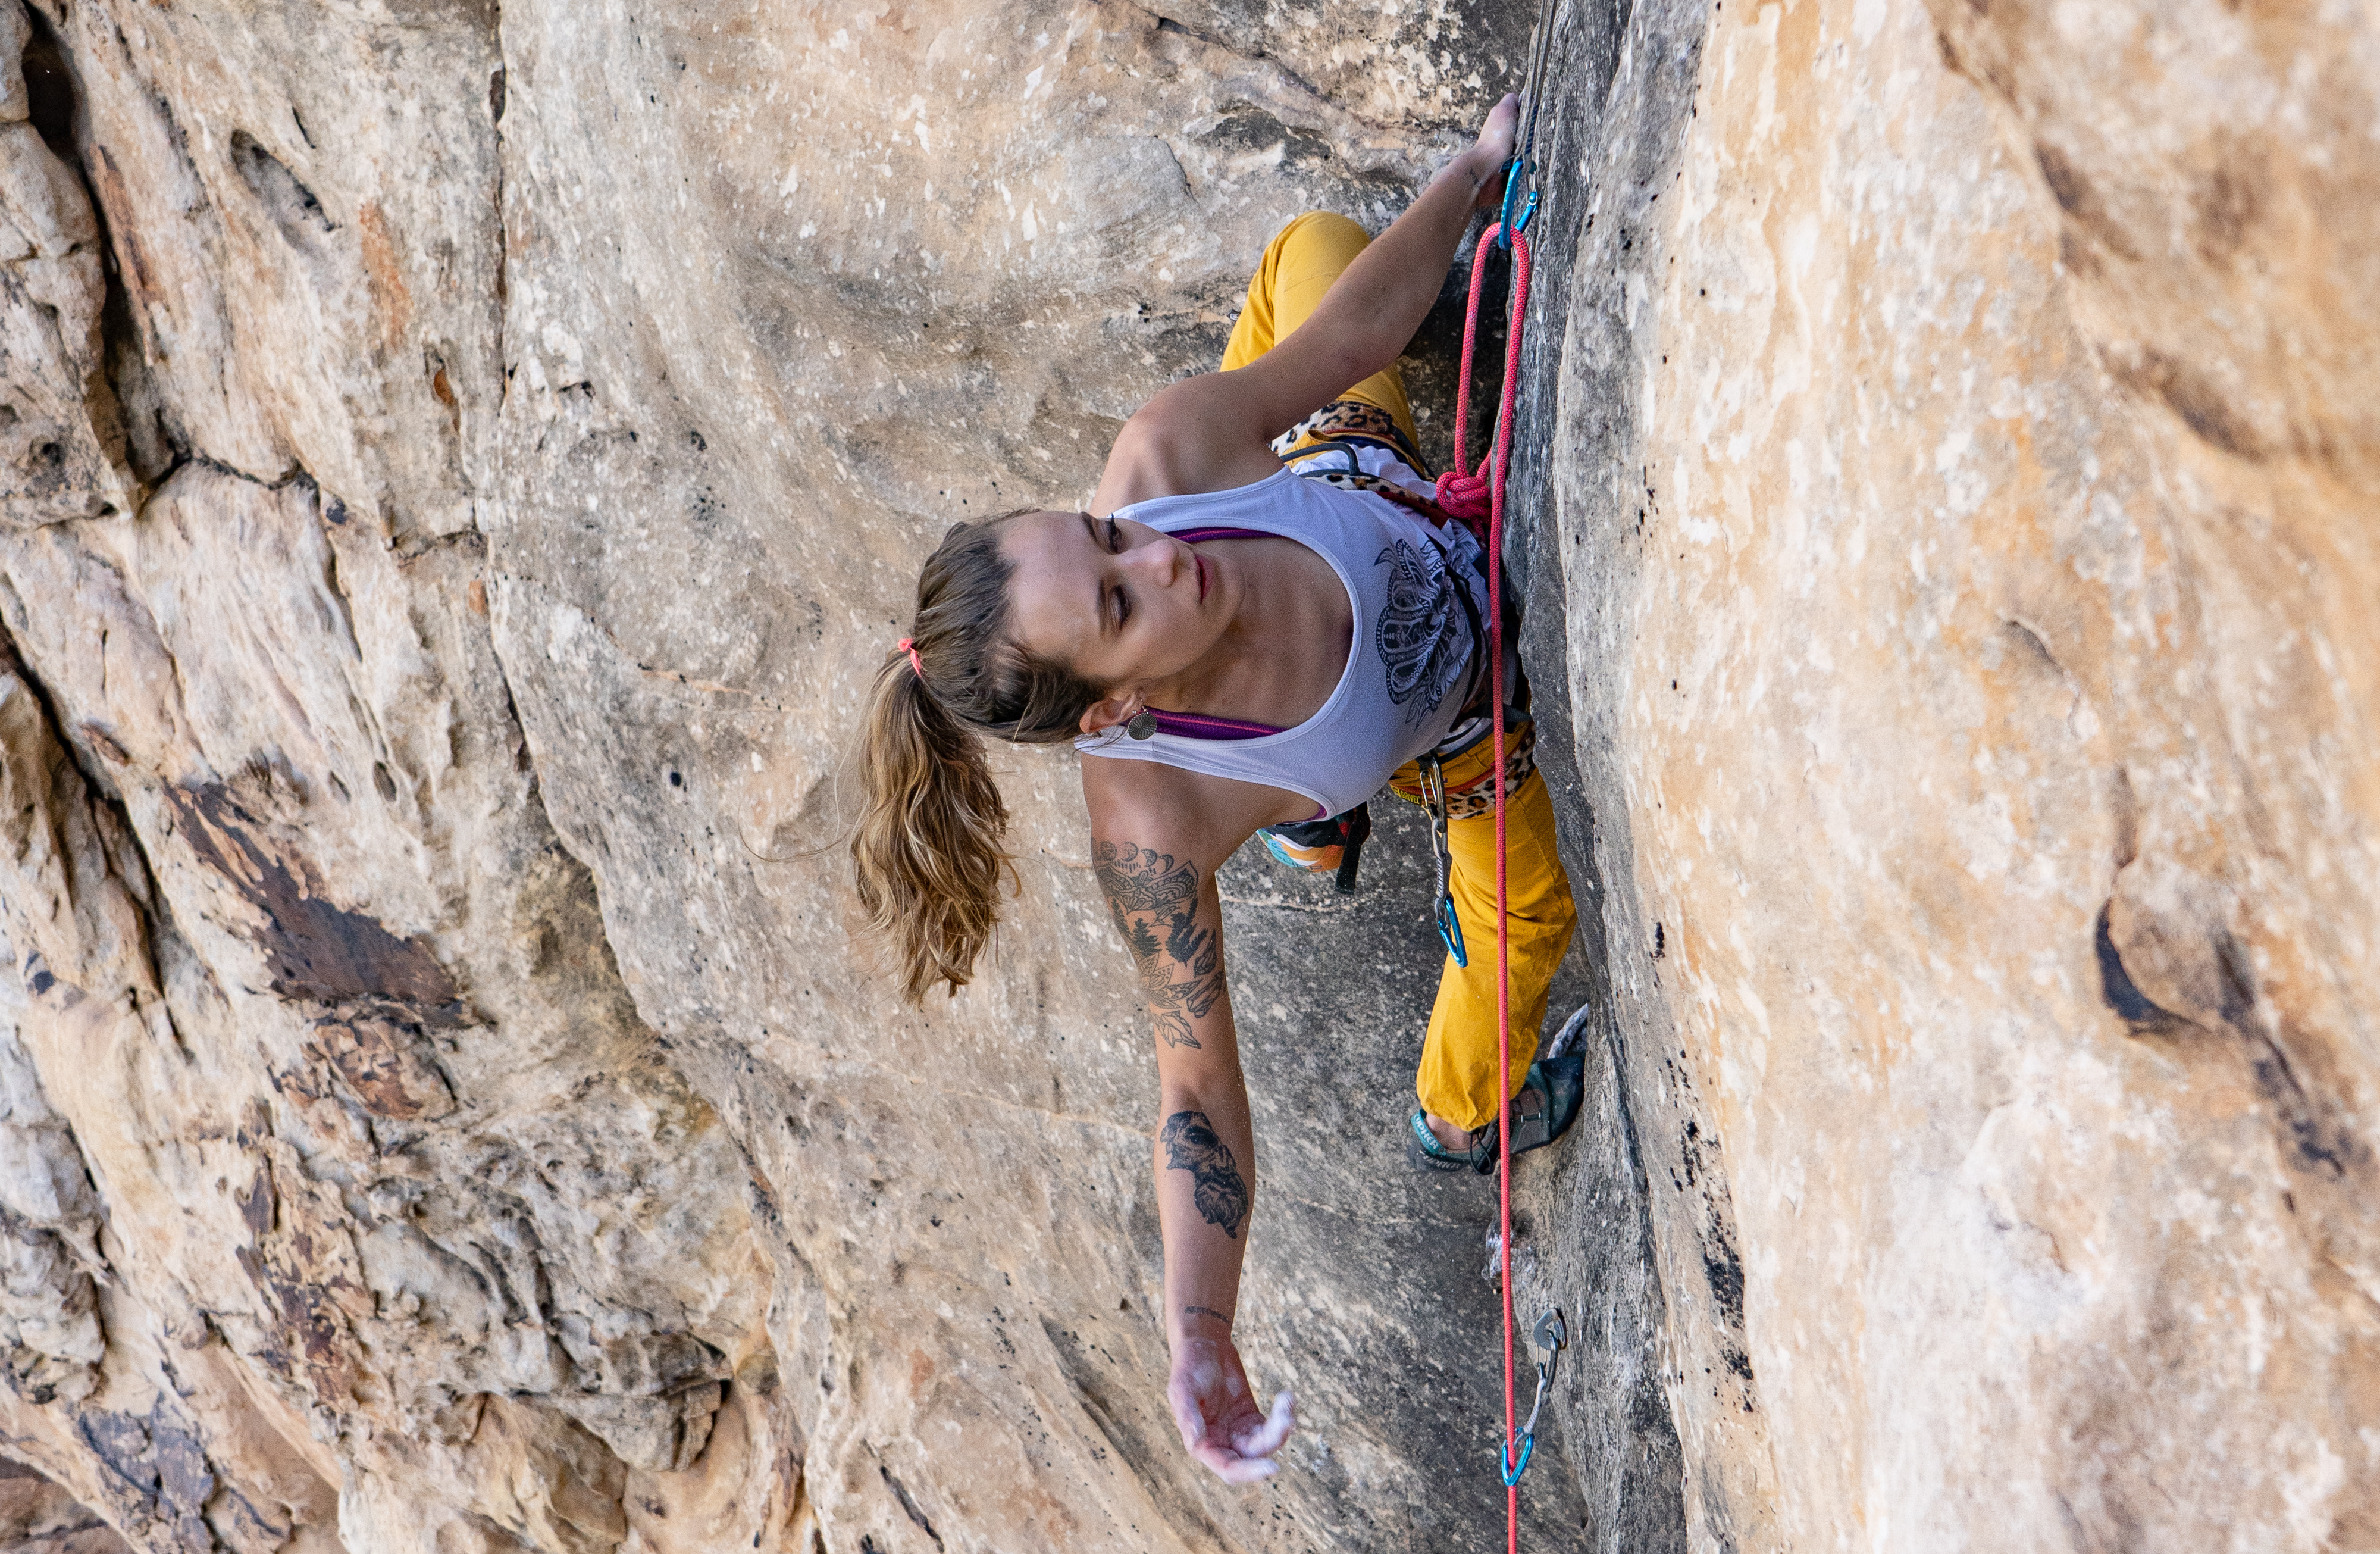 rock climber pauses for a rest and taking a breath on a climb